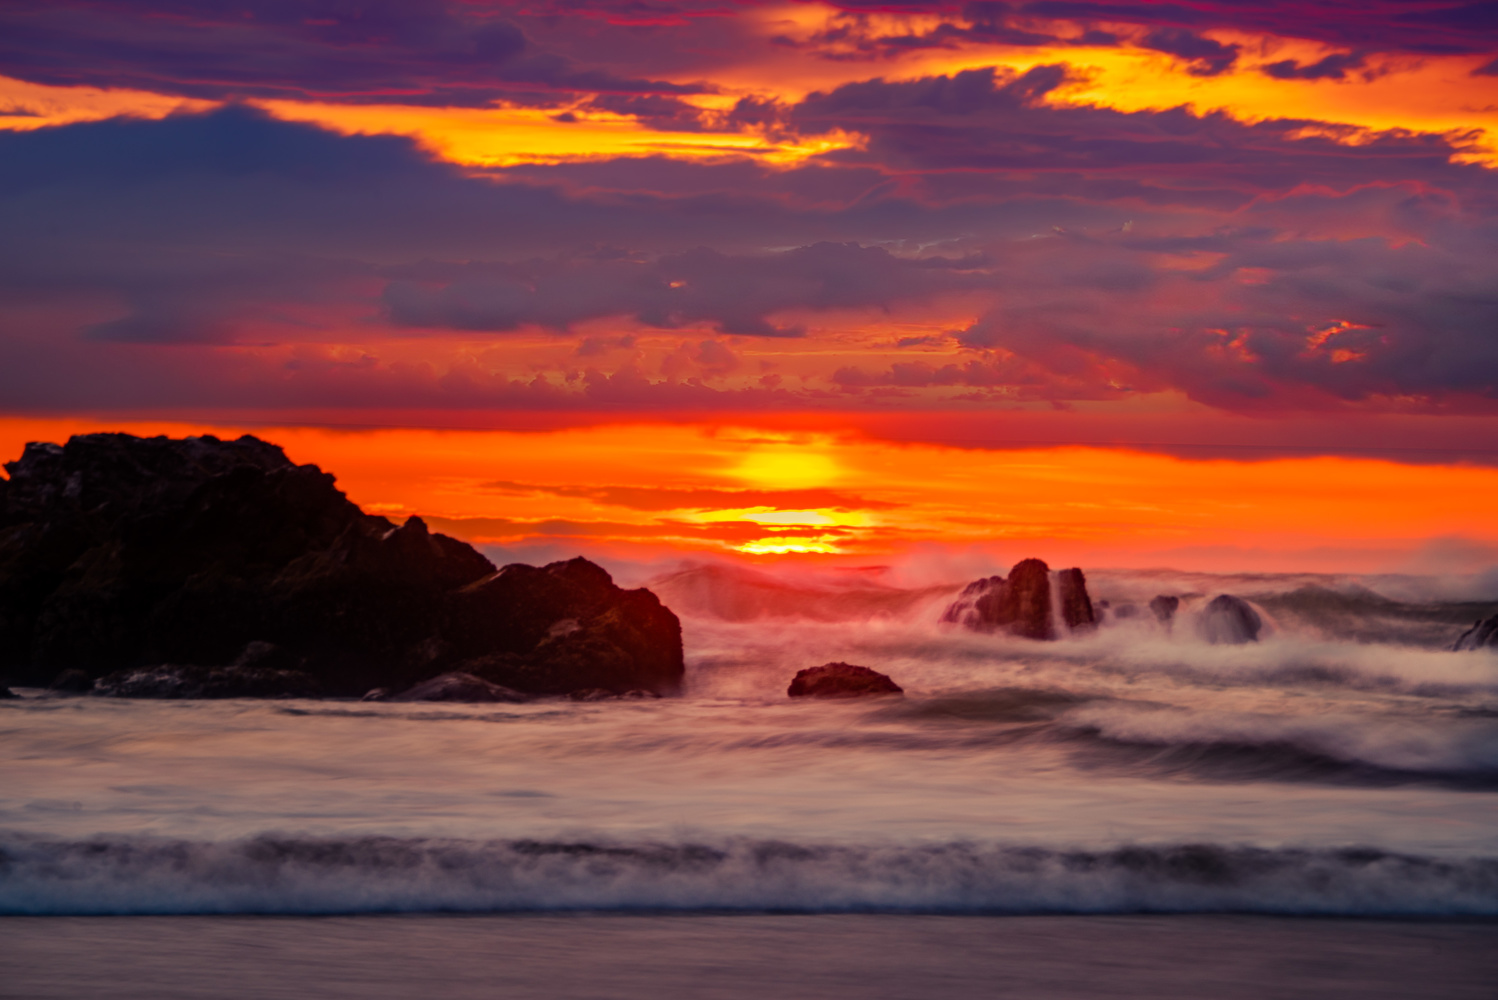 Waves at Sunset by Alex Hill